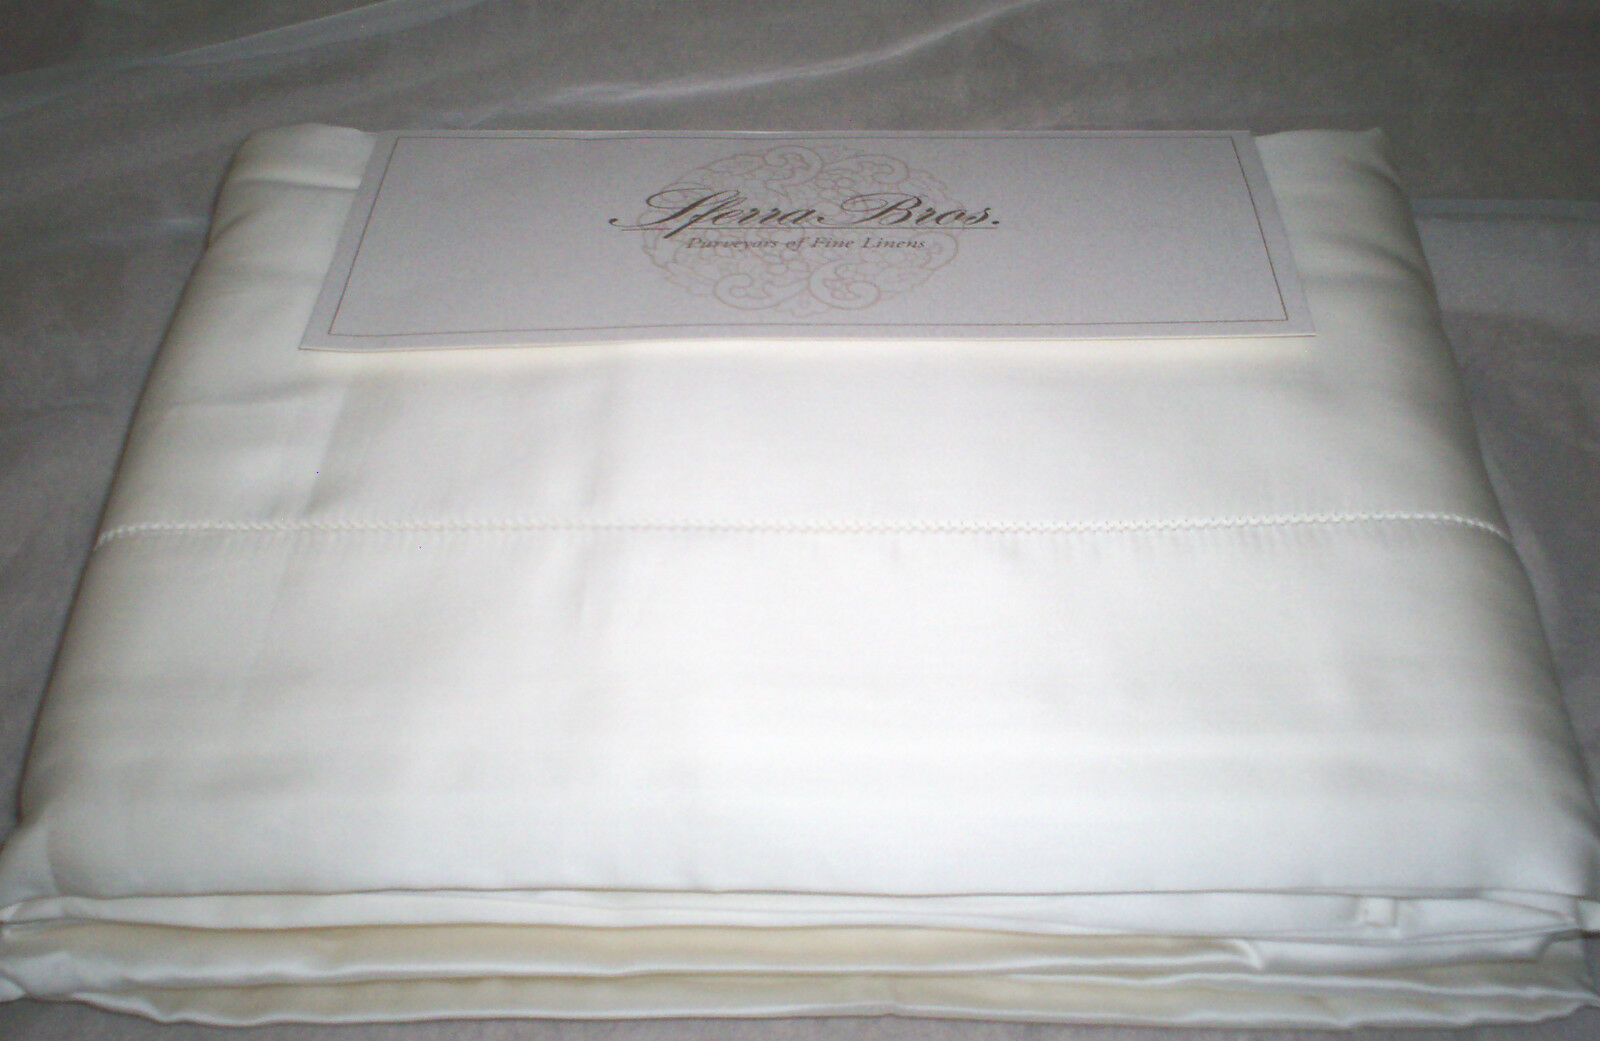 Sister S Bettwäsche Cal Set Sheet Sateen Cotton Long Extra 600tc Allegro Sferra King